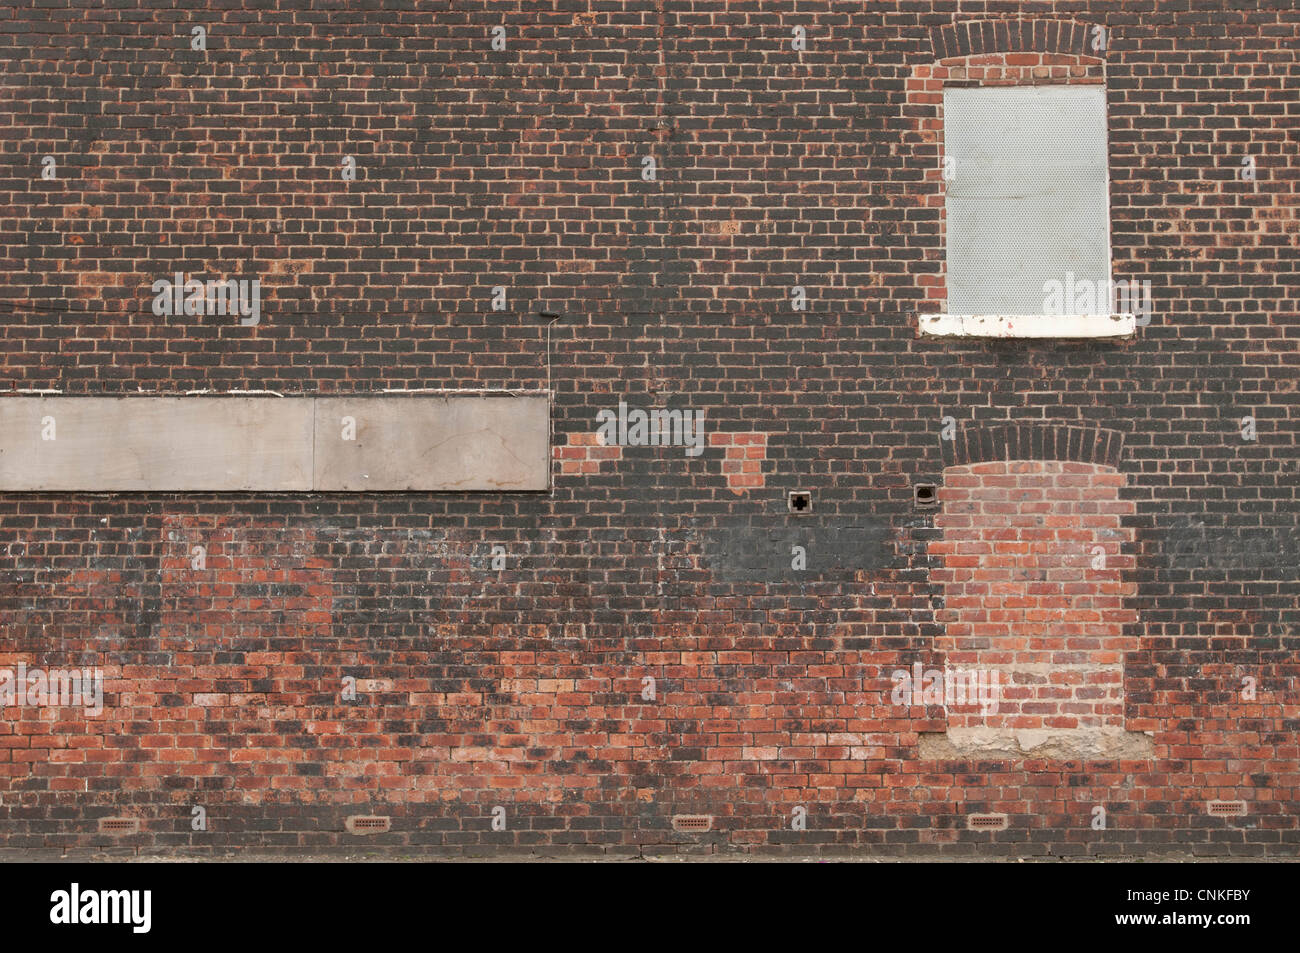 The gable end of a house with bricked up windows - Stock Image